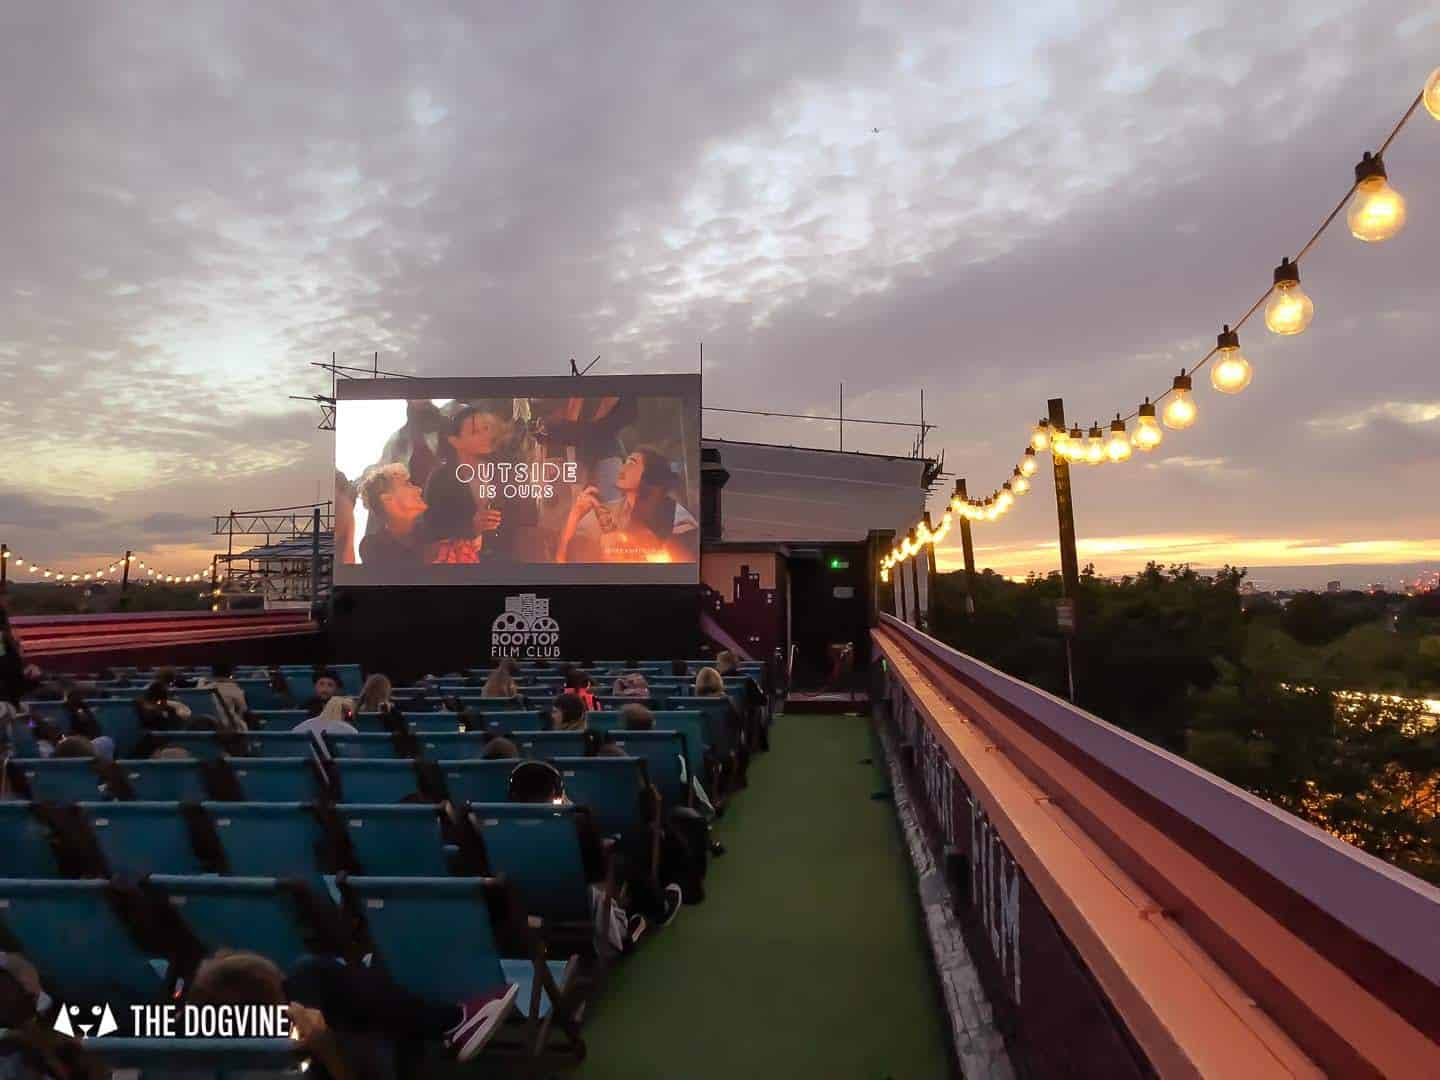 Spectacular Movie Moments at the Dog-friendly Rooftop Film Club 52